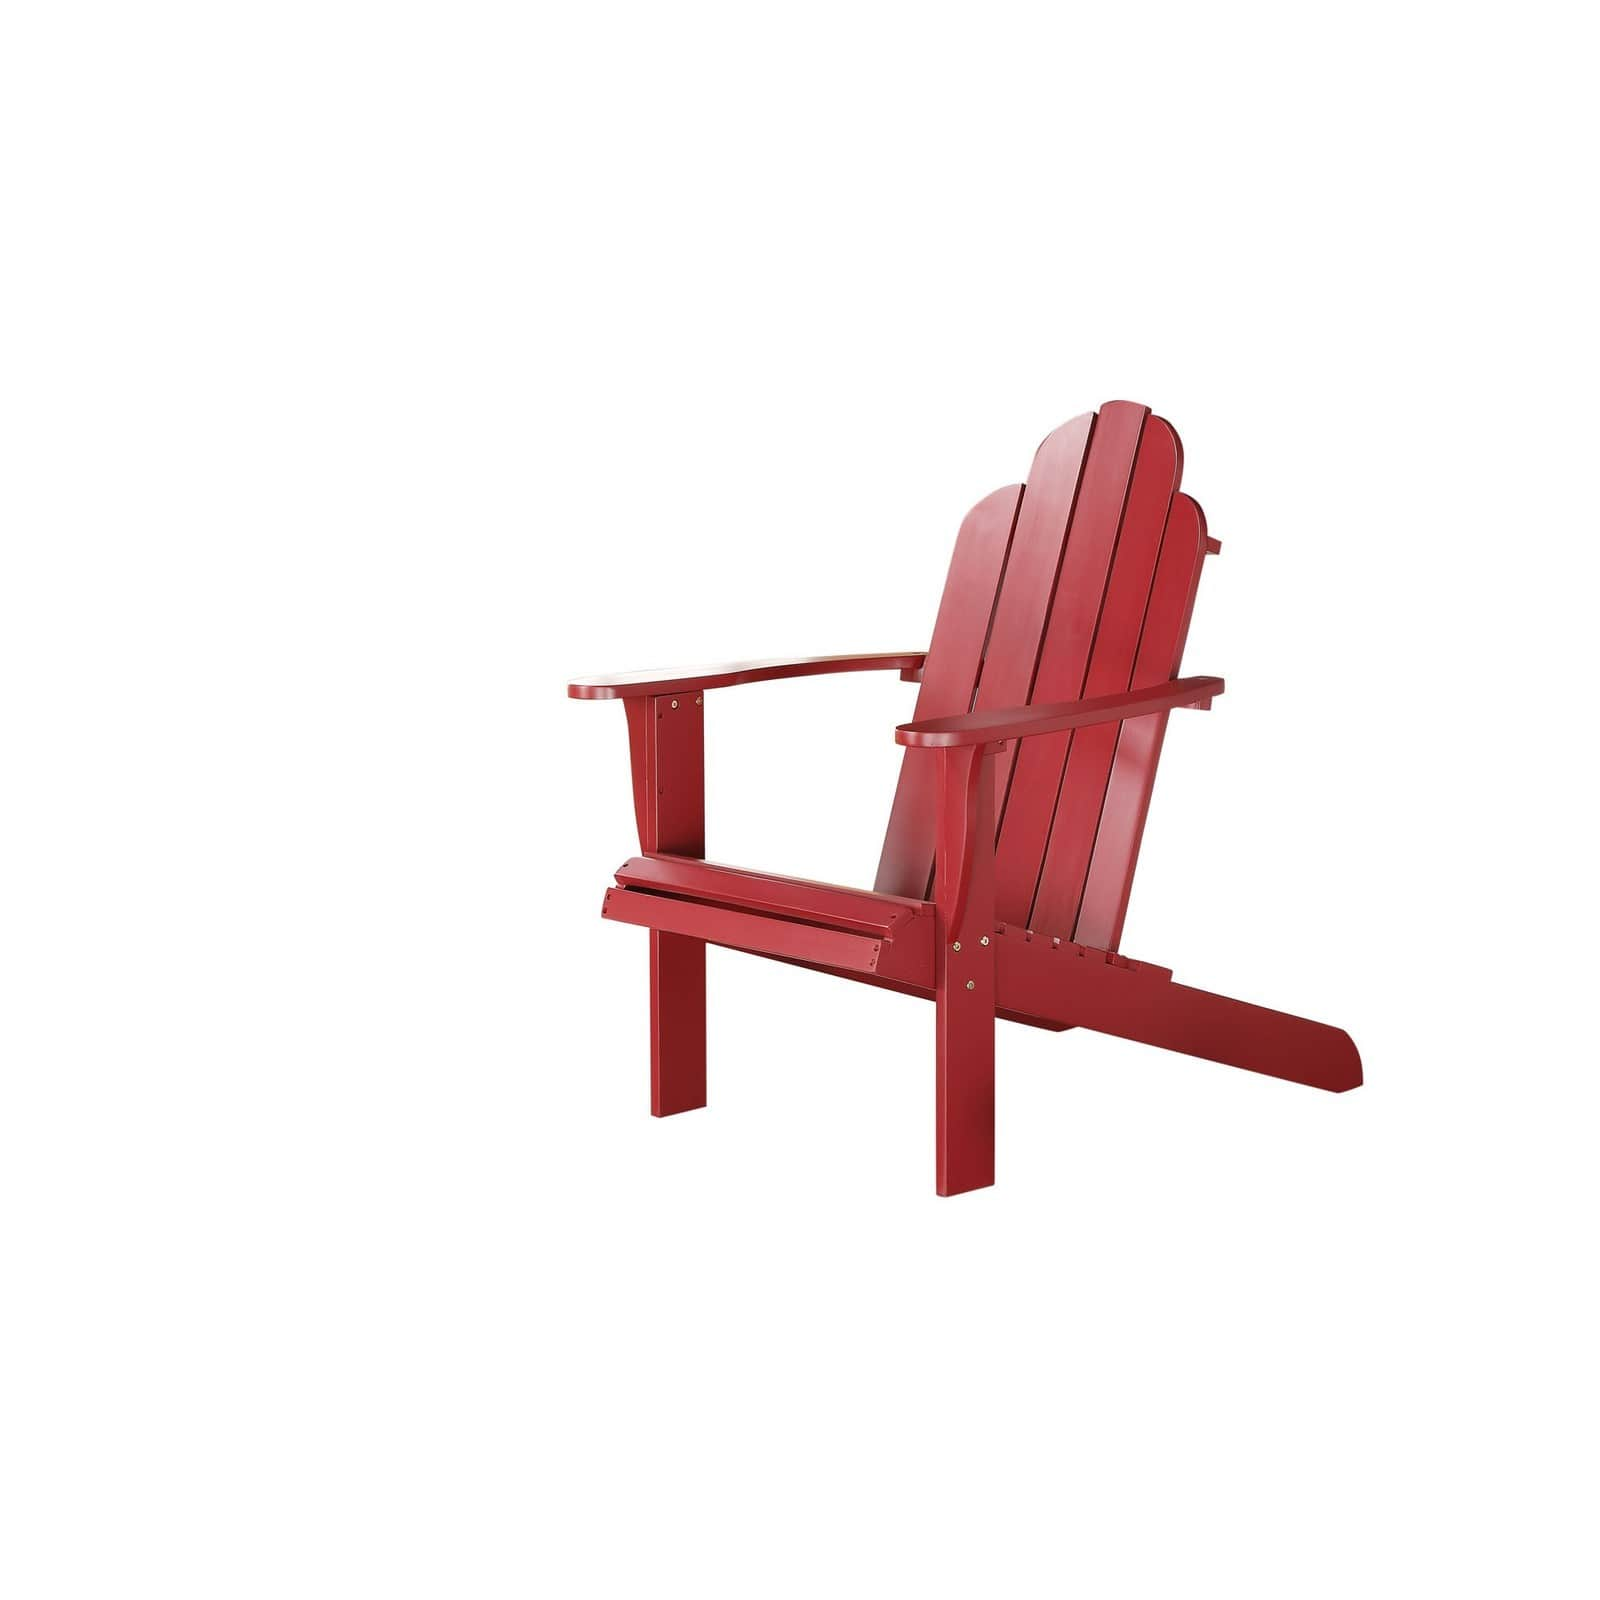 red adirondack chairs cheap universal chair covers for sale linon bradenton img